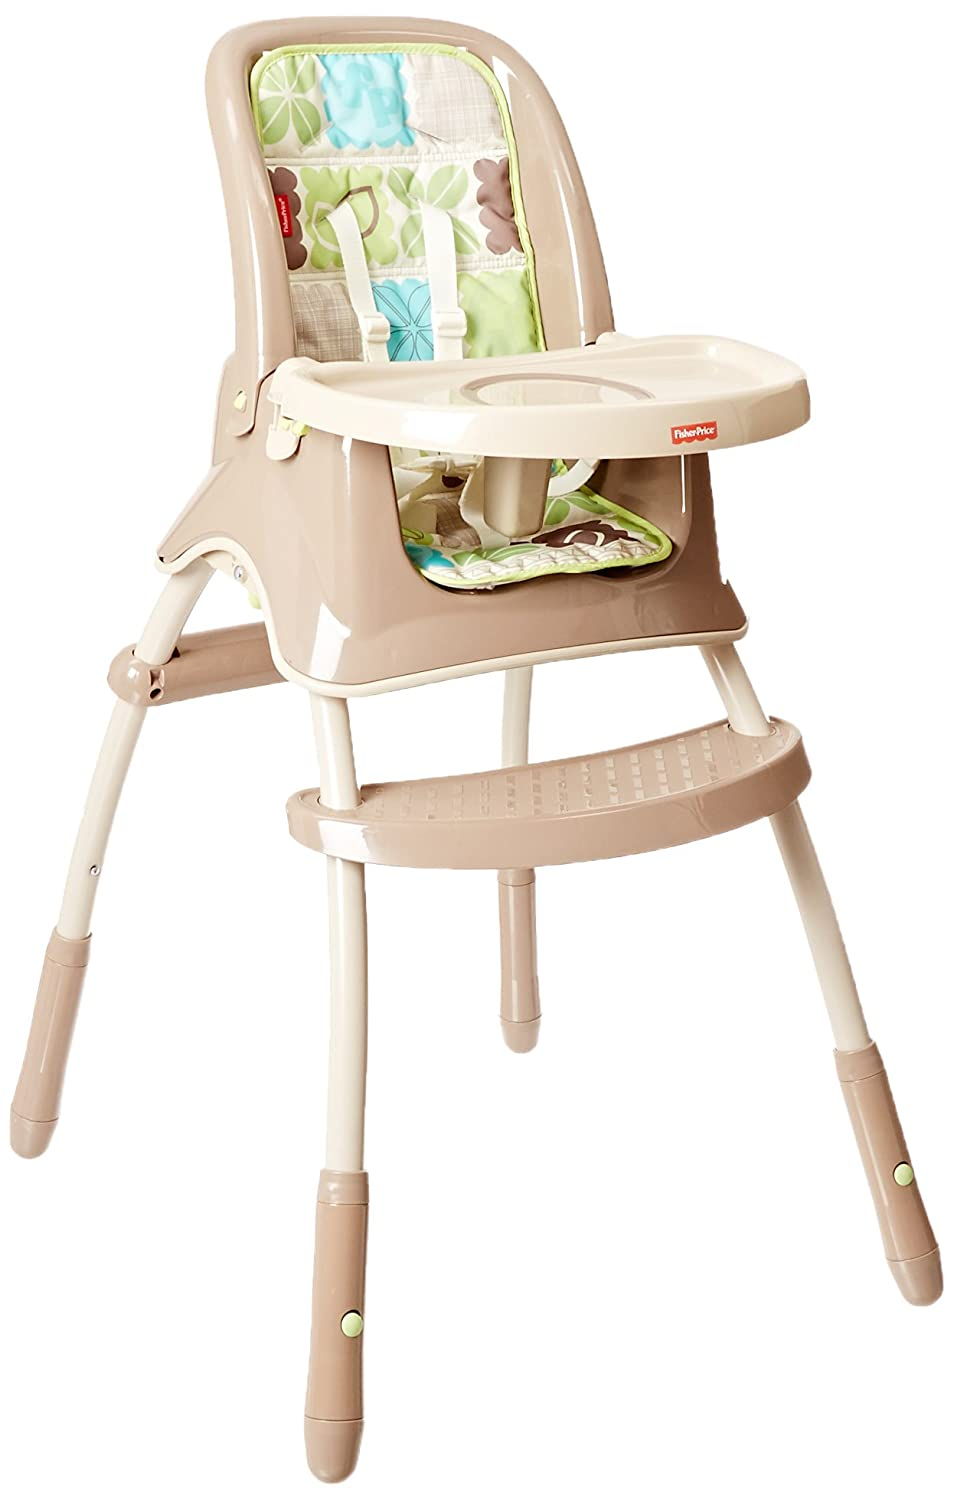 Charming Amazon.com : Fisher Price Rainforest Friends Grow With Me High Chair : High  Chairs For Toddlers Convert To Booster Seat : Baby